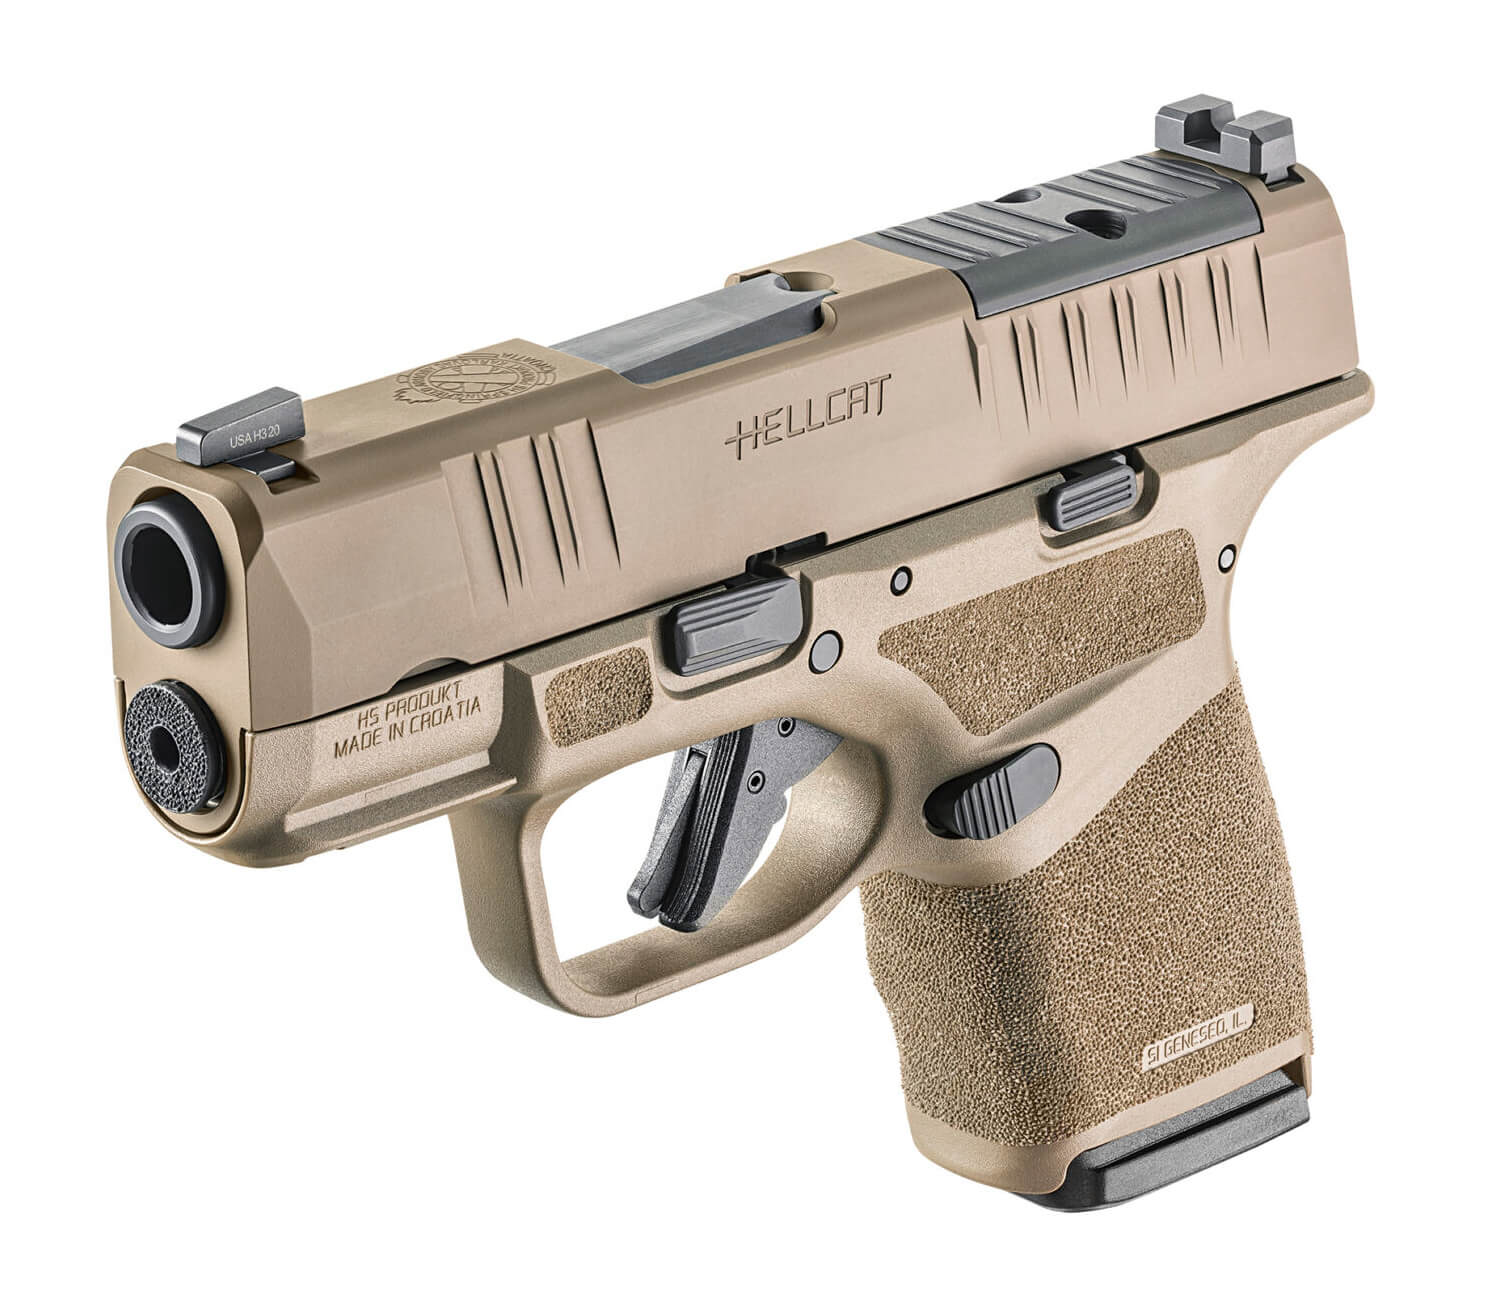 A forward angle view of the Hellcat pistol in FDE